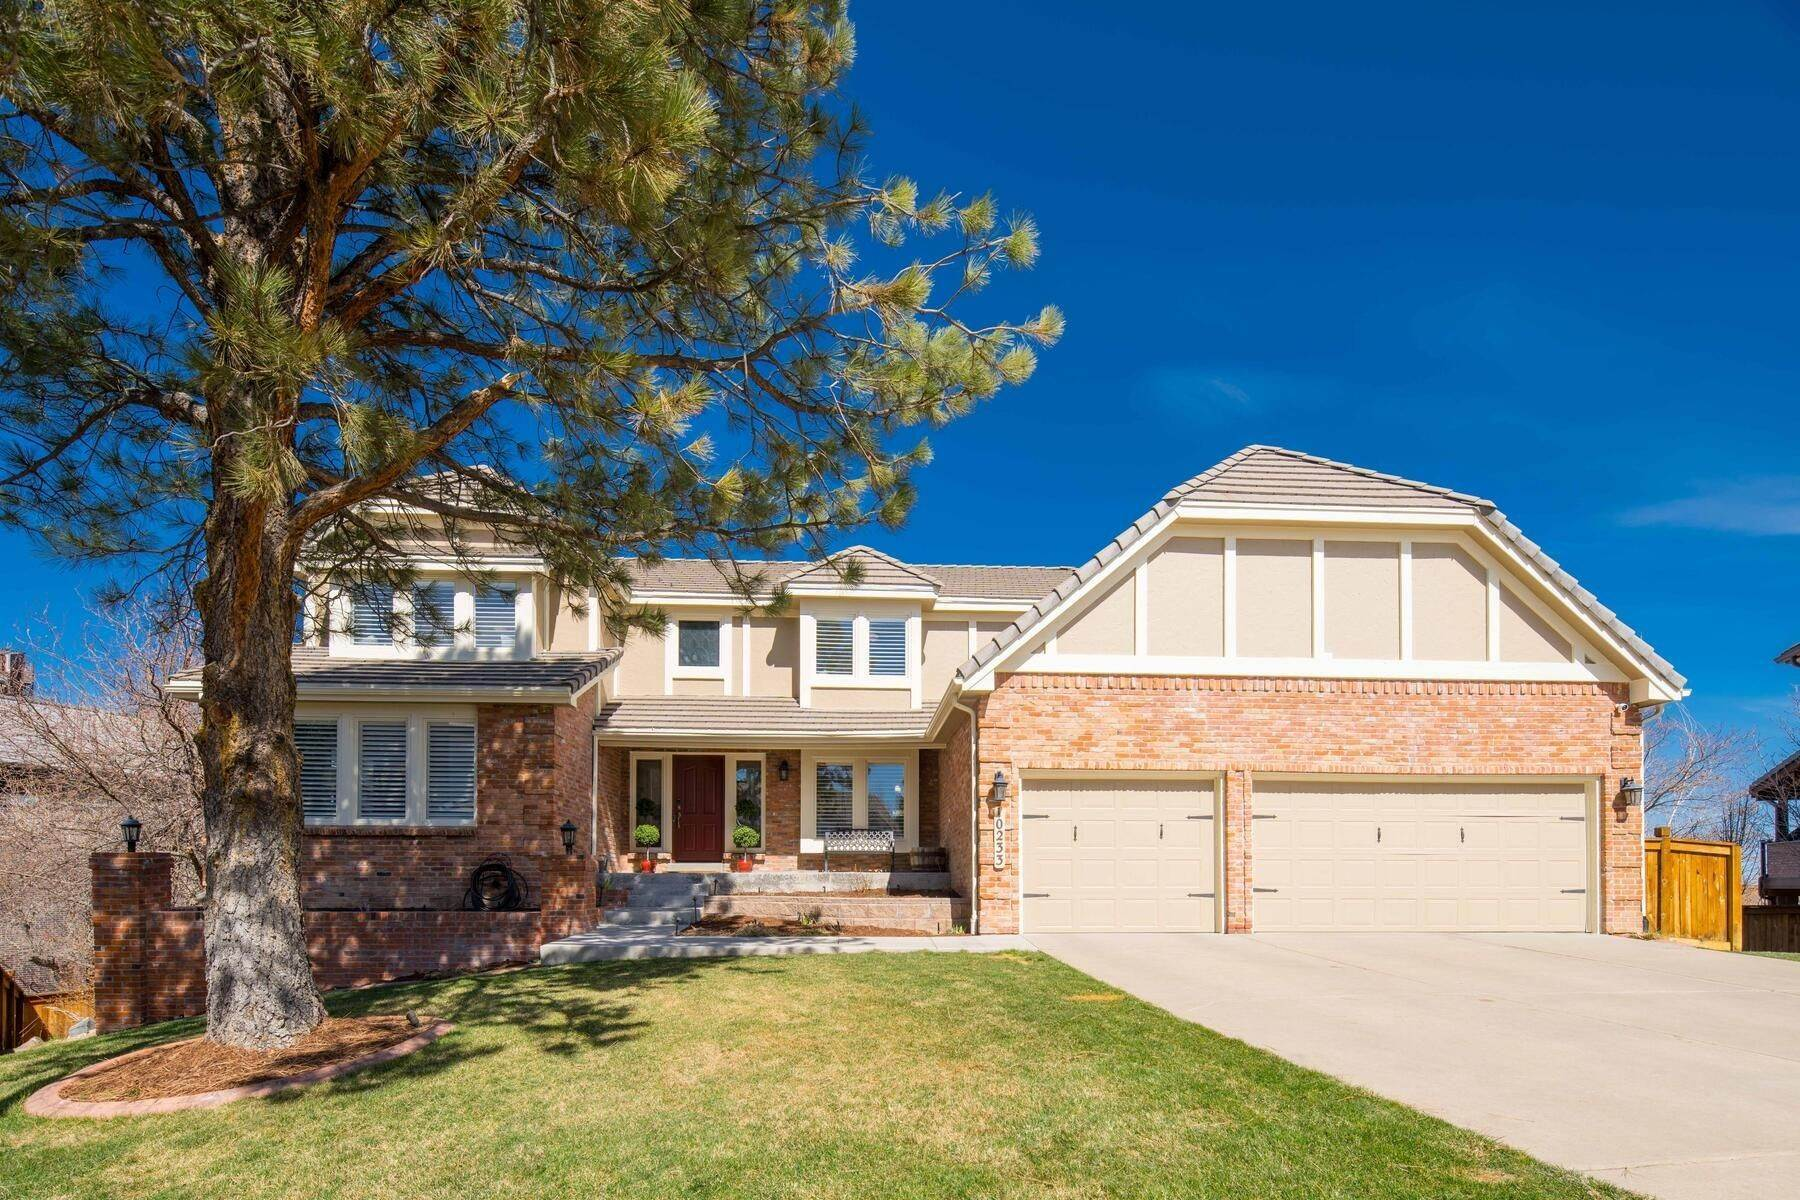 Single Family Homes for Active at Distinctive Two Story Home Overlooking Cherry Creek State Park! 10233 E Sheri Lane Englewood, Colorado 80111 United States